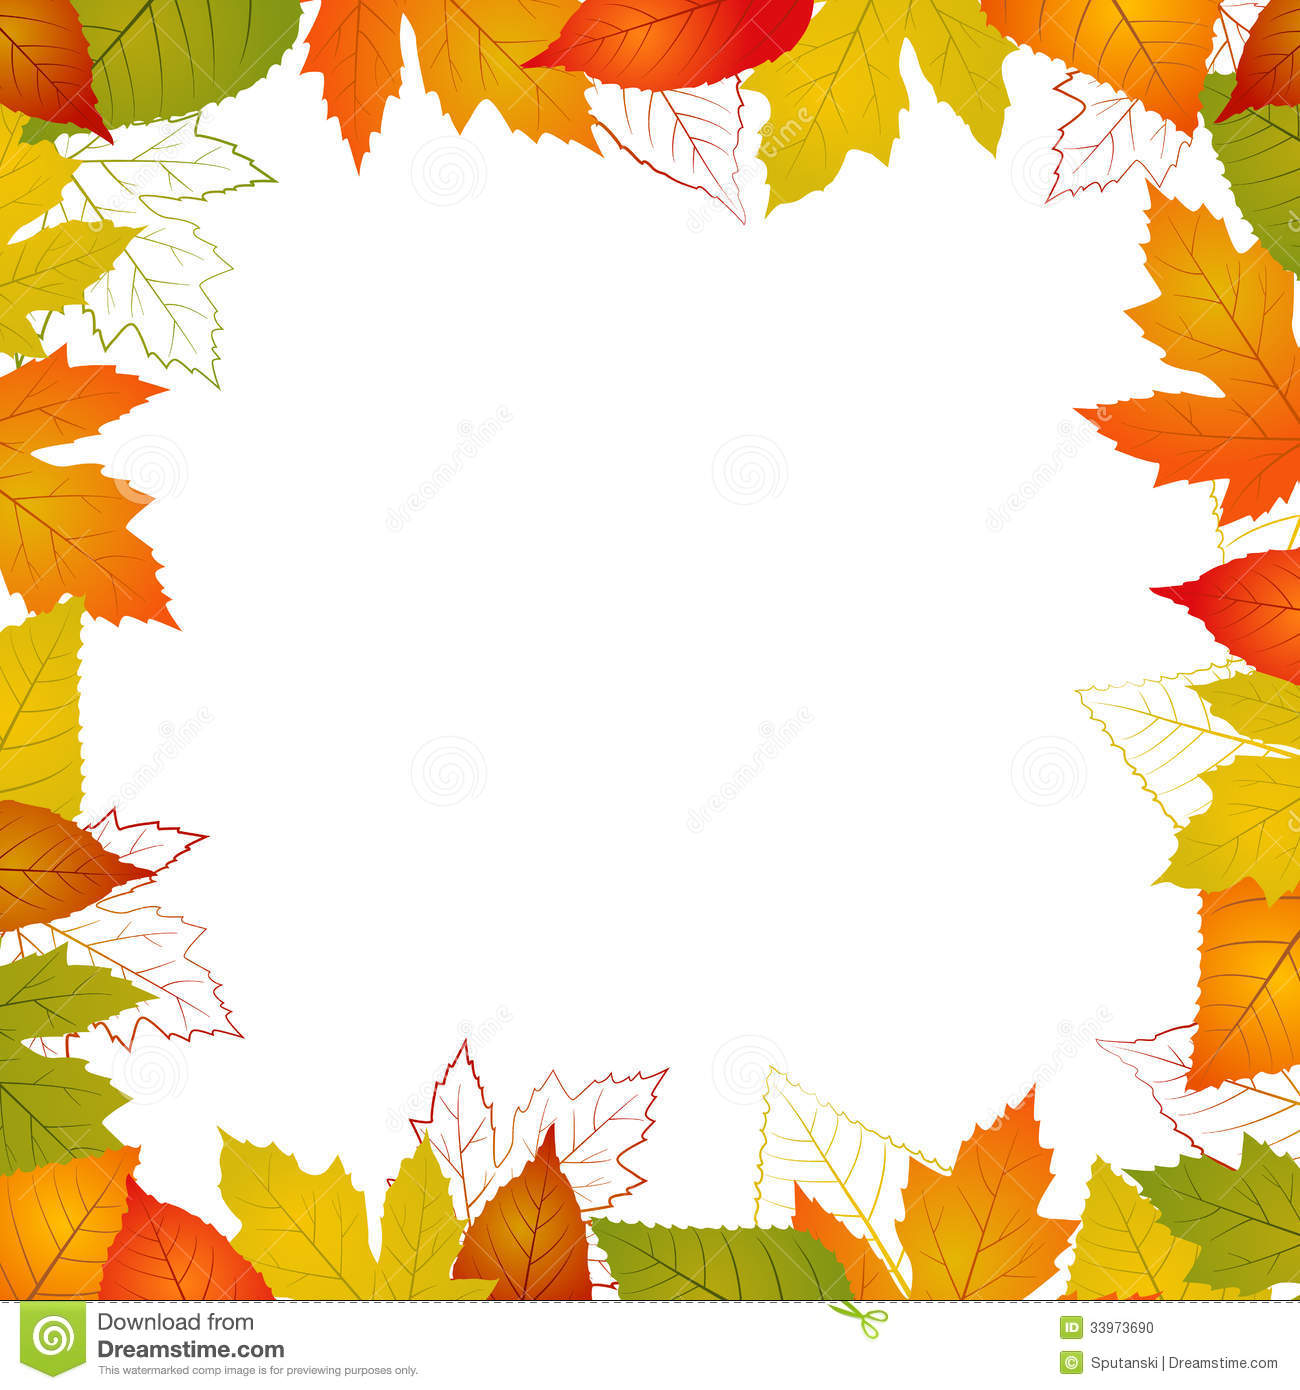 Fall Leaf Border Illustration Isolated From Background